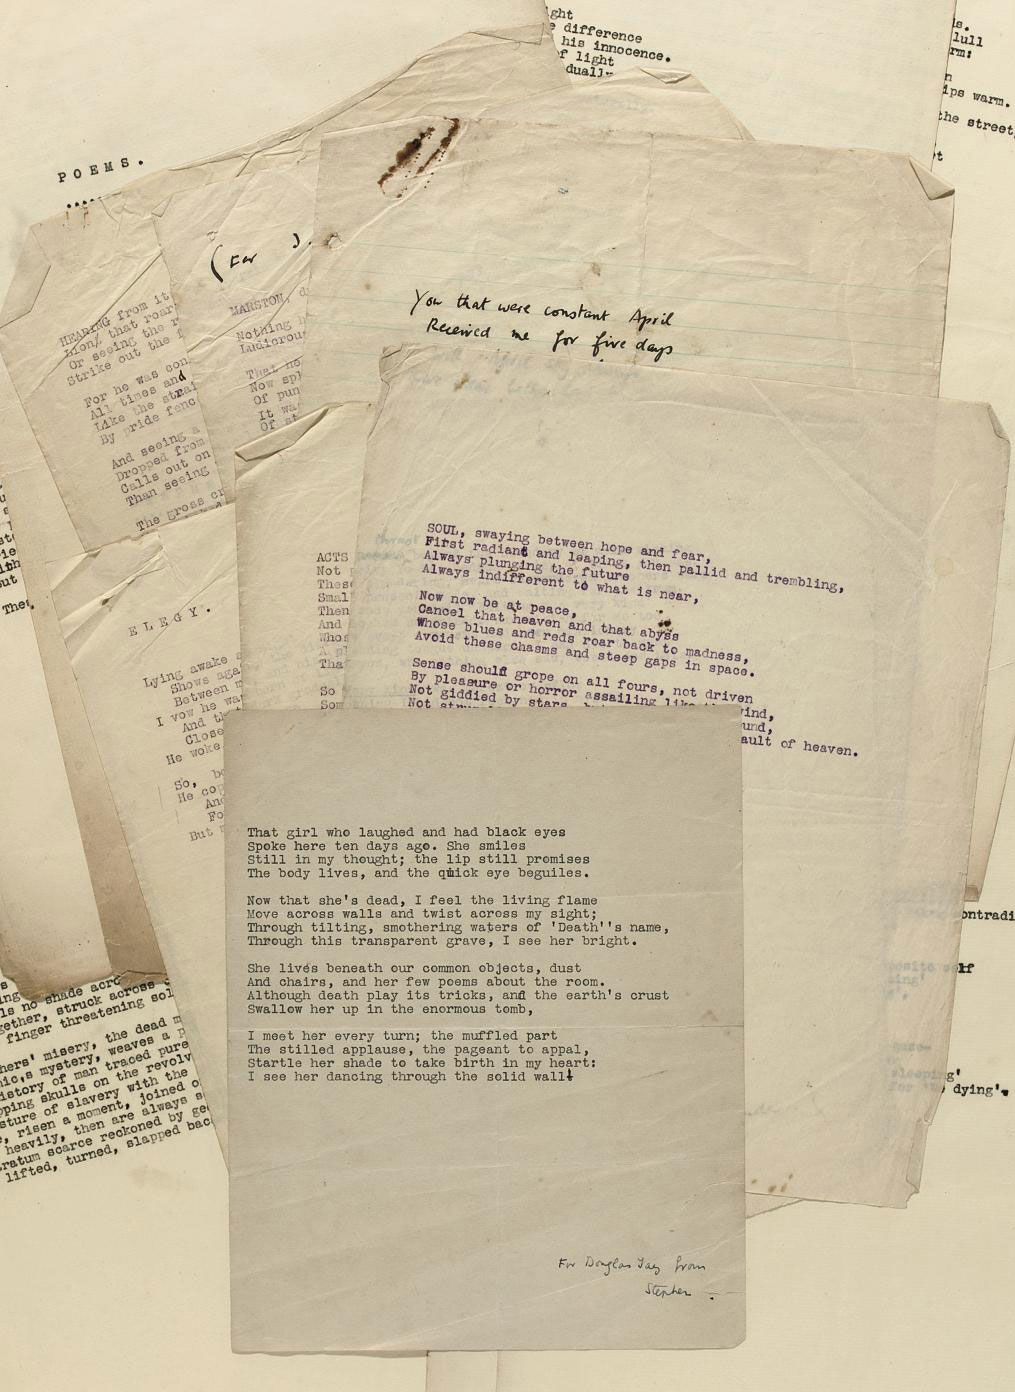 "SPENDER, Stephen (1909-1995). Collection of one autograph manuscript and six typescripts with autograph signatures or emendations, of poems, [c.1929], comprising 'MARSTON, dropping it in the grate, broke his pipe' (title 'For J.M.F.' in autograph, signed), 'Elegy  Lying awake at night' (signed), 'Hearing from its cage' (signed), 'ACTS thrust beyond the boundary of mere wishing' (emendations, signed), 'You that were constant April' (autograph), 'That girl who laughed and had black eyes' (inscribed 'For Douglas Jay from  Stephen'), 'Saying ""Good morning"" becomes painful' (noted 'June 12.  W.L.'), together 7 pages, 4to; with 10 further poems in unamended carbon copies, 9 on uniform folio leaves with title page 'Poems  Stephen Spender', including one apparently unpublished poem, 'They went off six in the car and two on the running board' (minor wear and soiling at margins)."